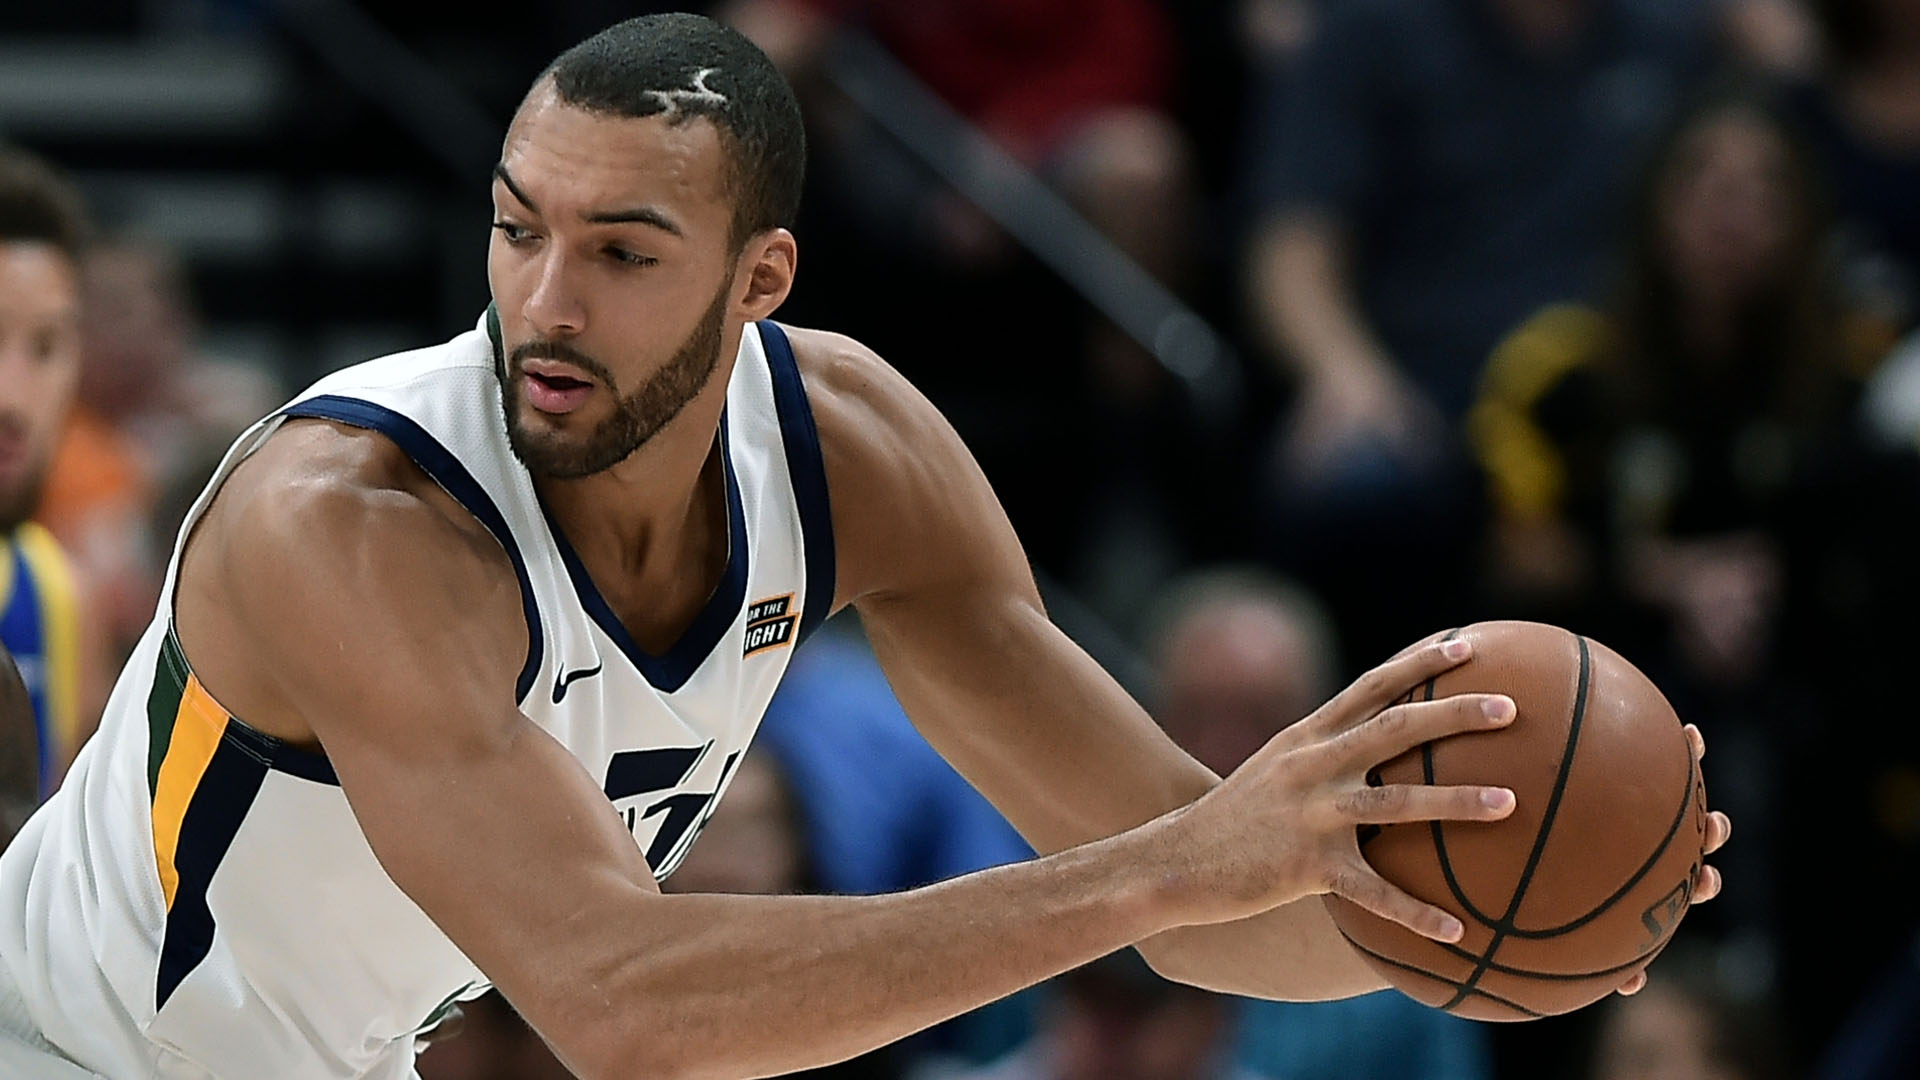 Coronavirus: Improving Rudy Gobert – I wish I would have taken this thing more seriously